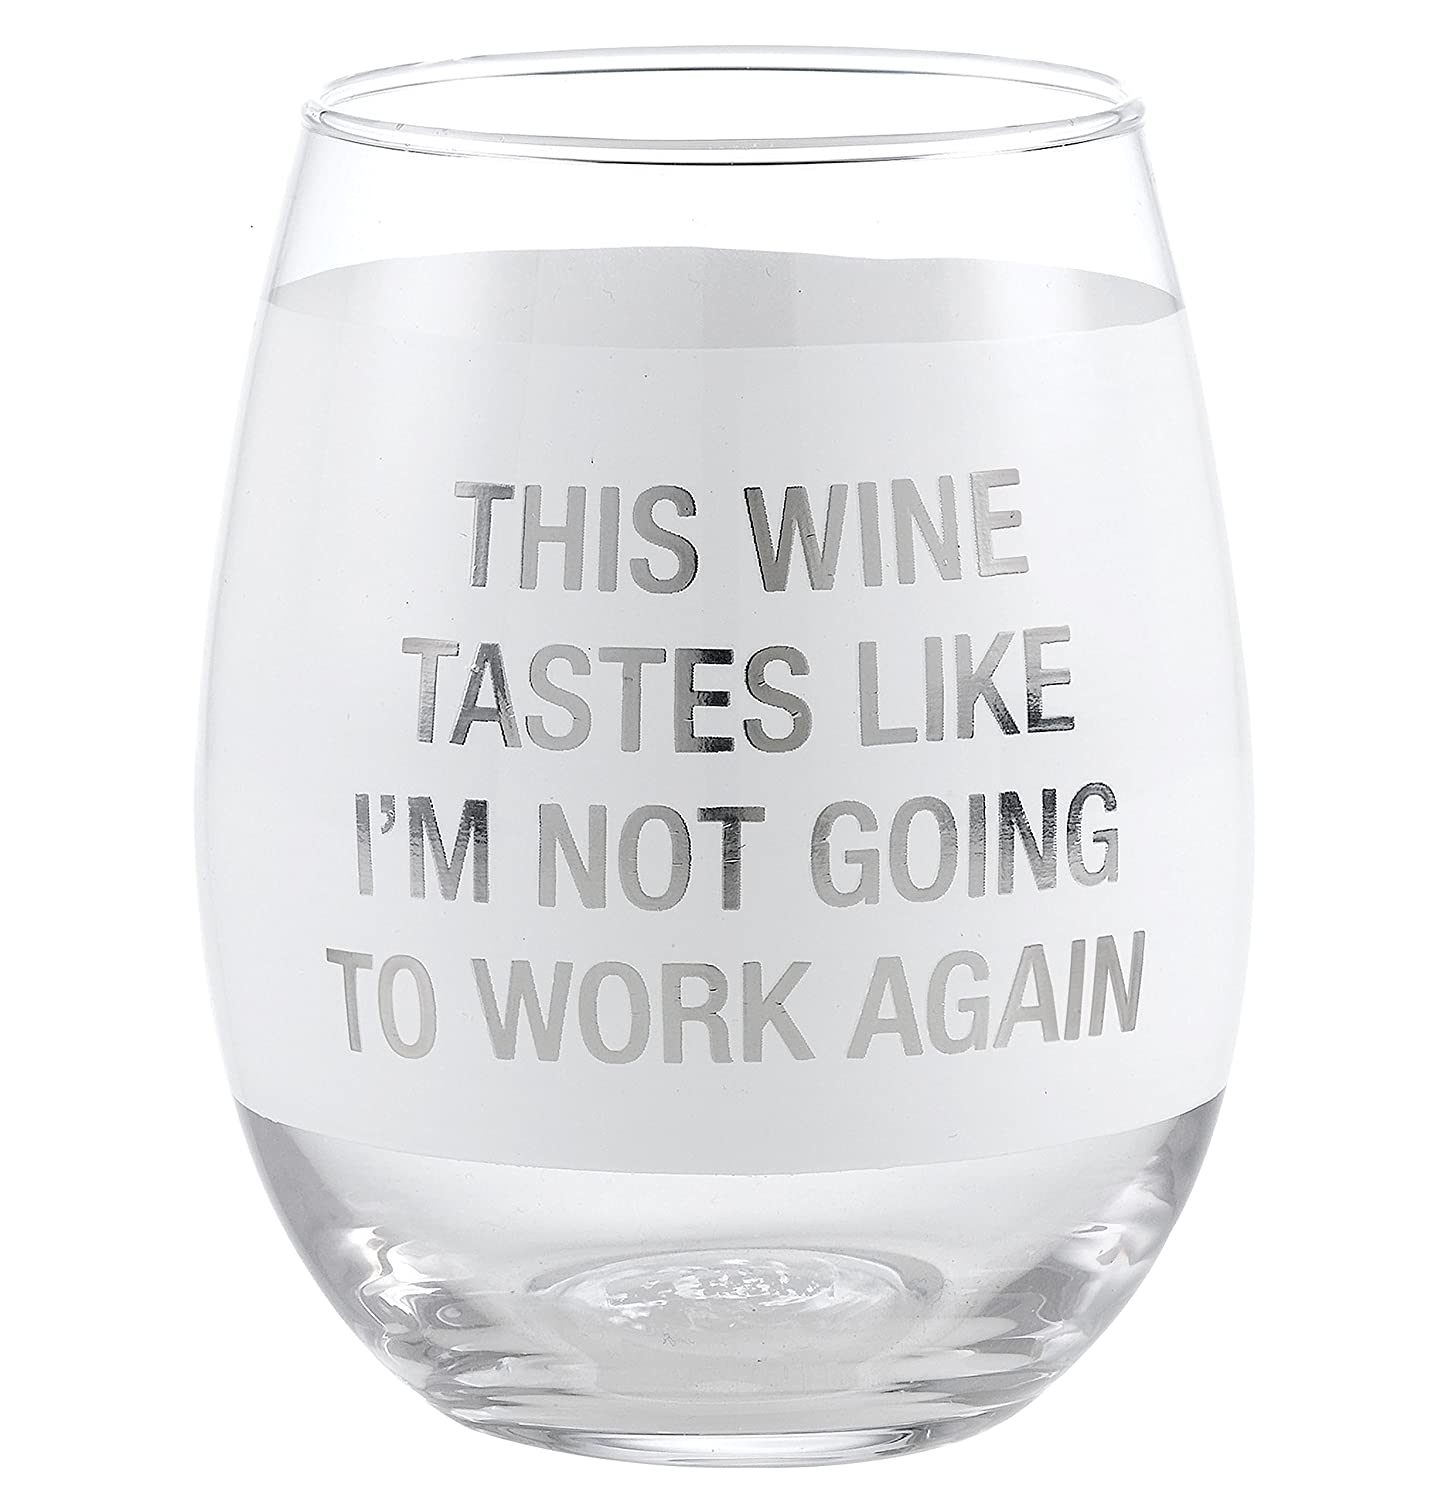 Clear About Face Designs Retirement Tastes Like Im Not Going to Work Stemless Wine Glass 16 oz